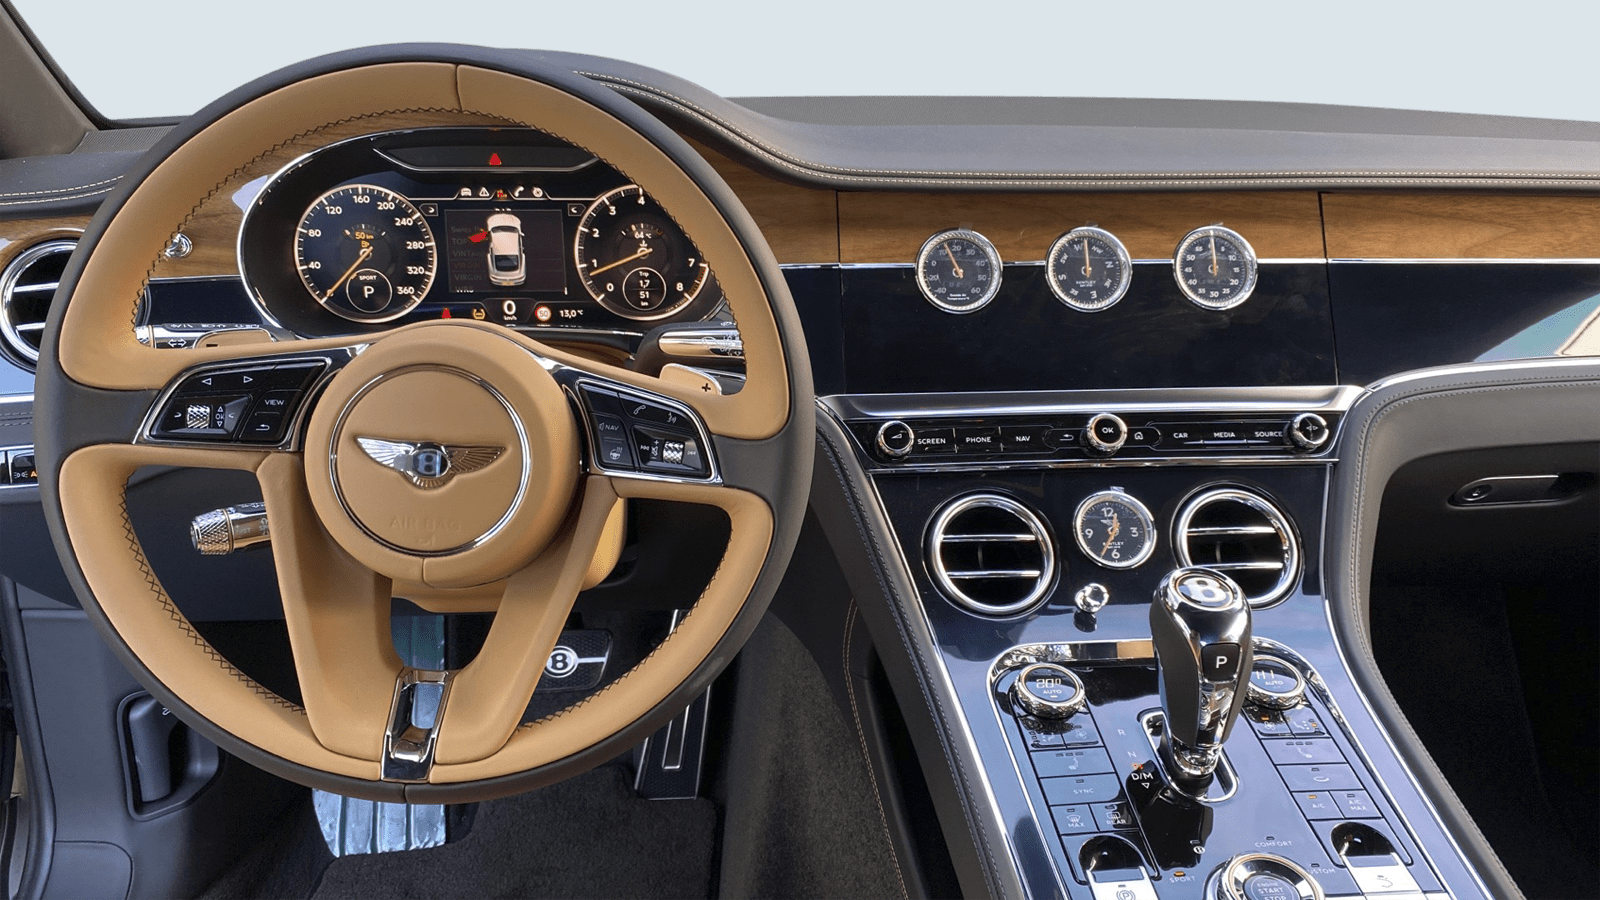 Bentley Continental GT V8 Blau interior - Clyde Auto-Abo